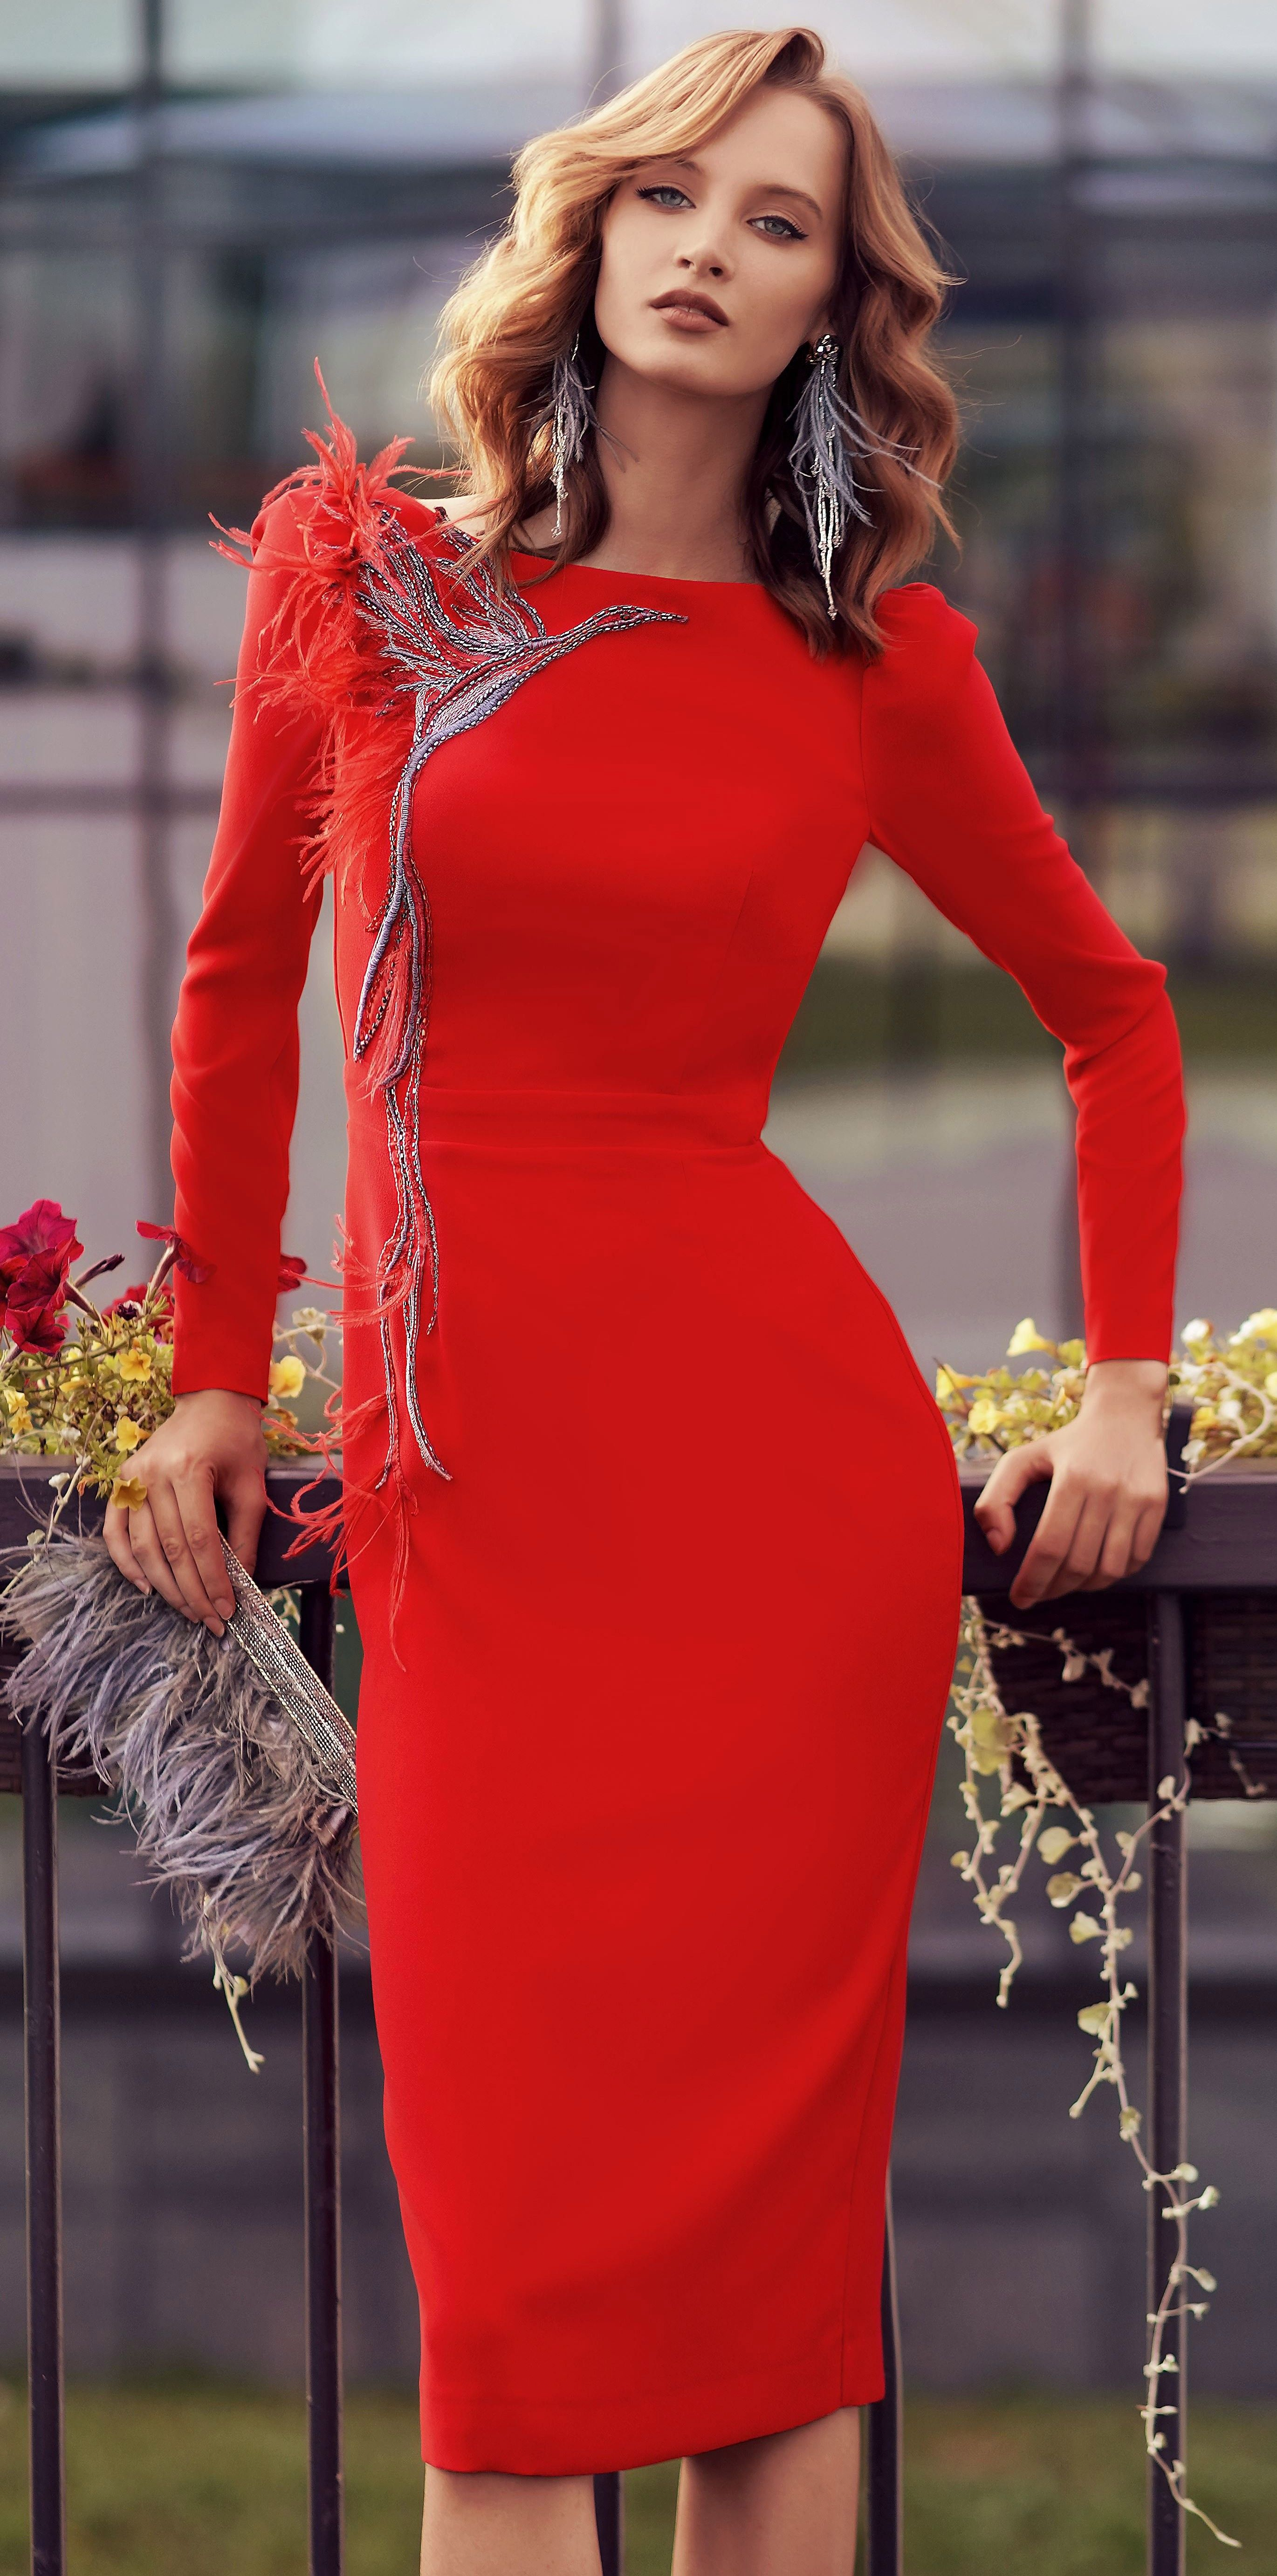 Papilio Red Special Occasion Dress With Long Sleeves Dresses Red Dress Outfit Occasion Dresses [ 5528 x 2740 Pixel ]